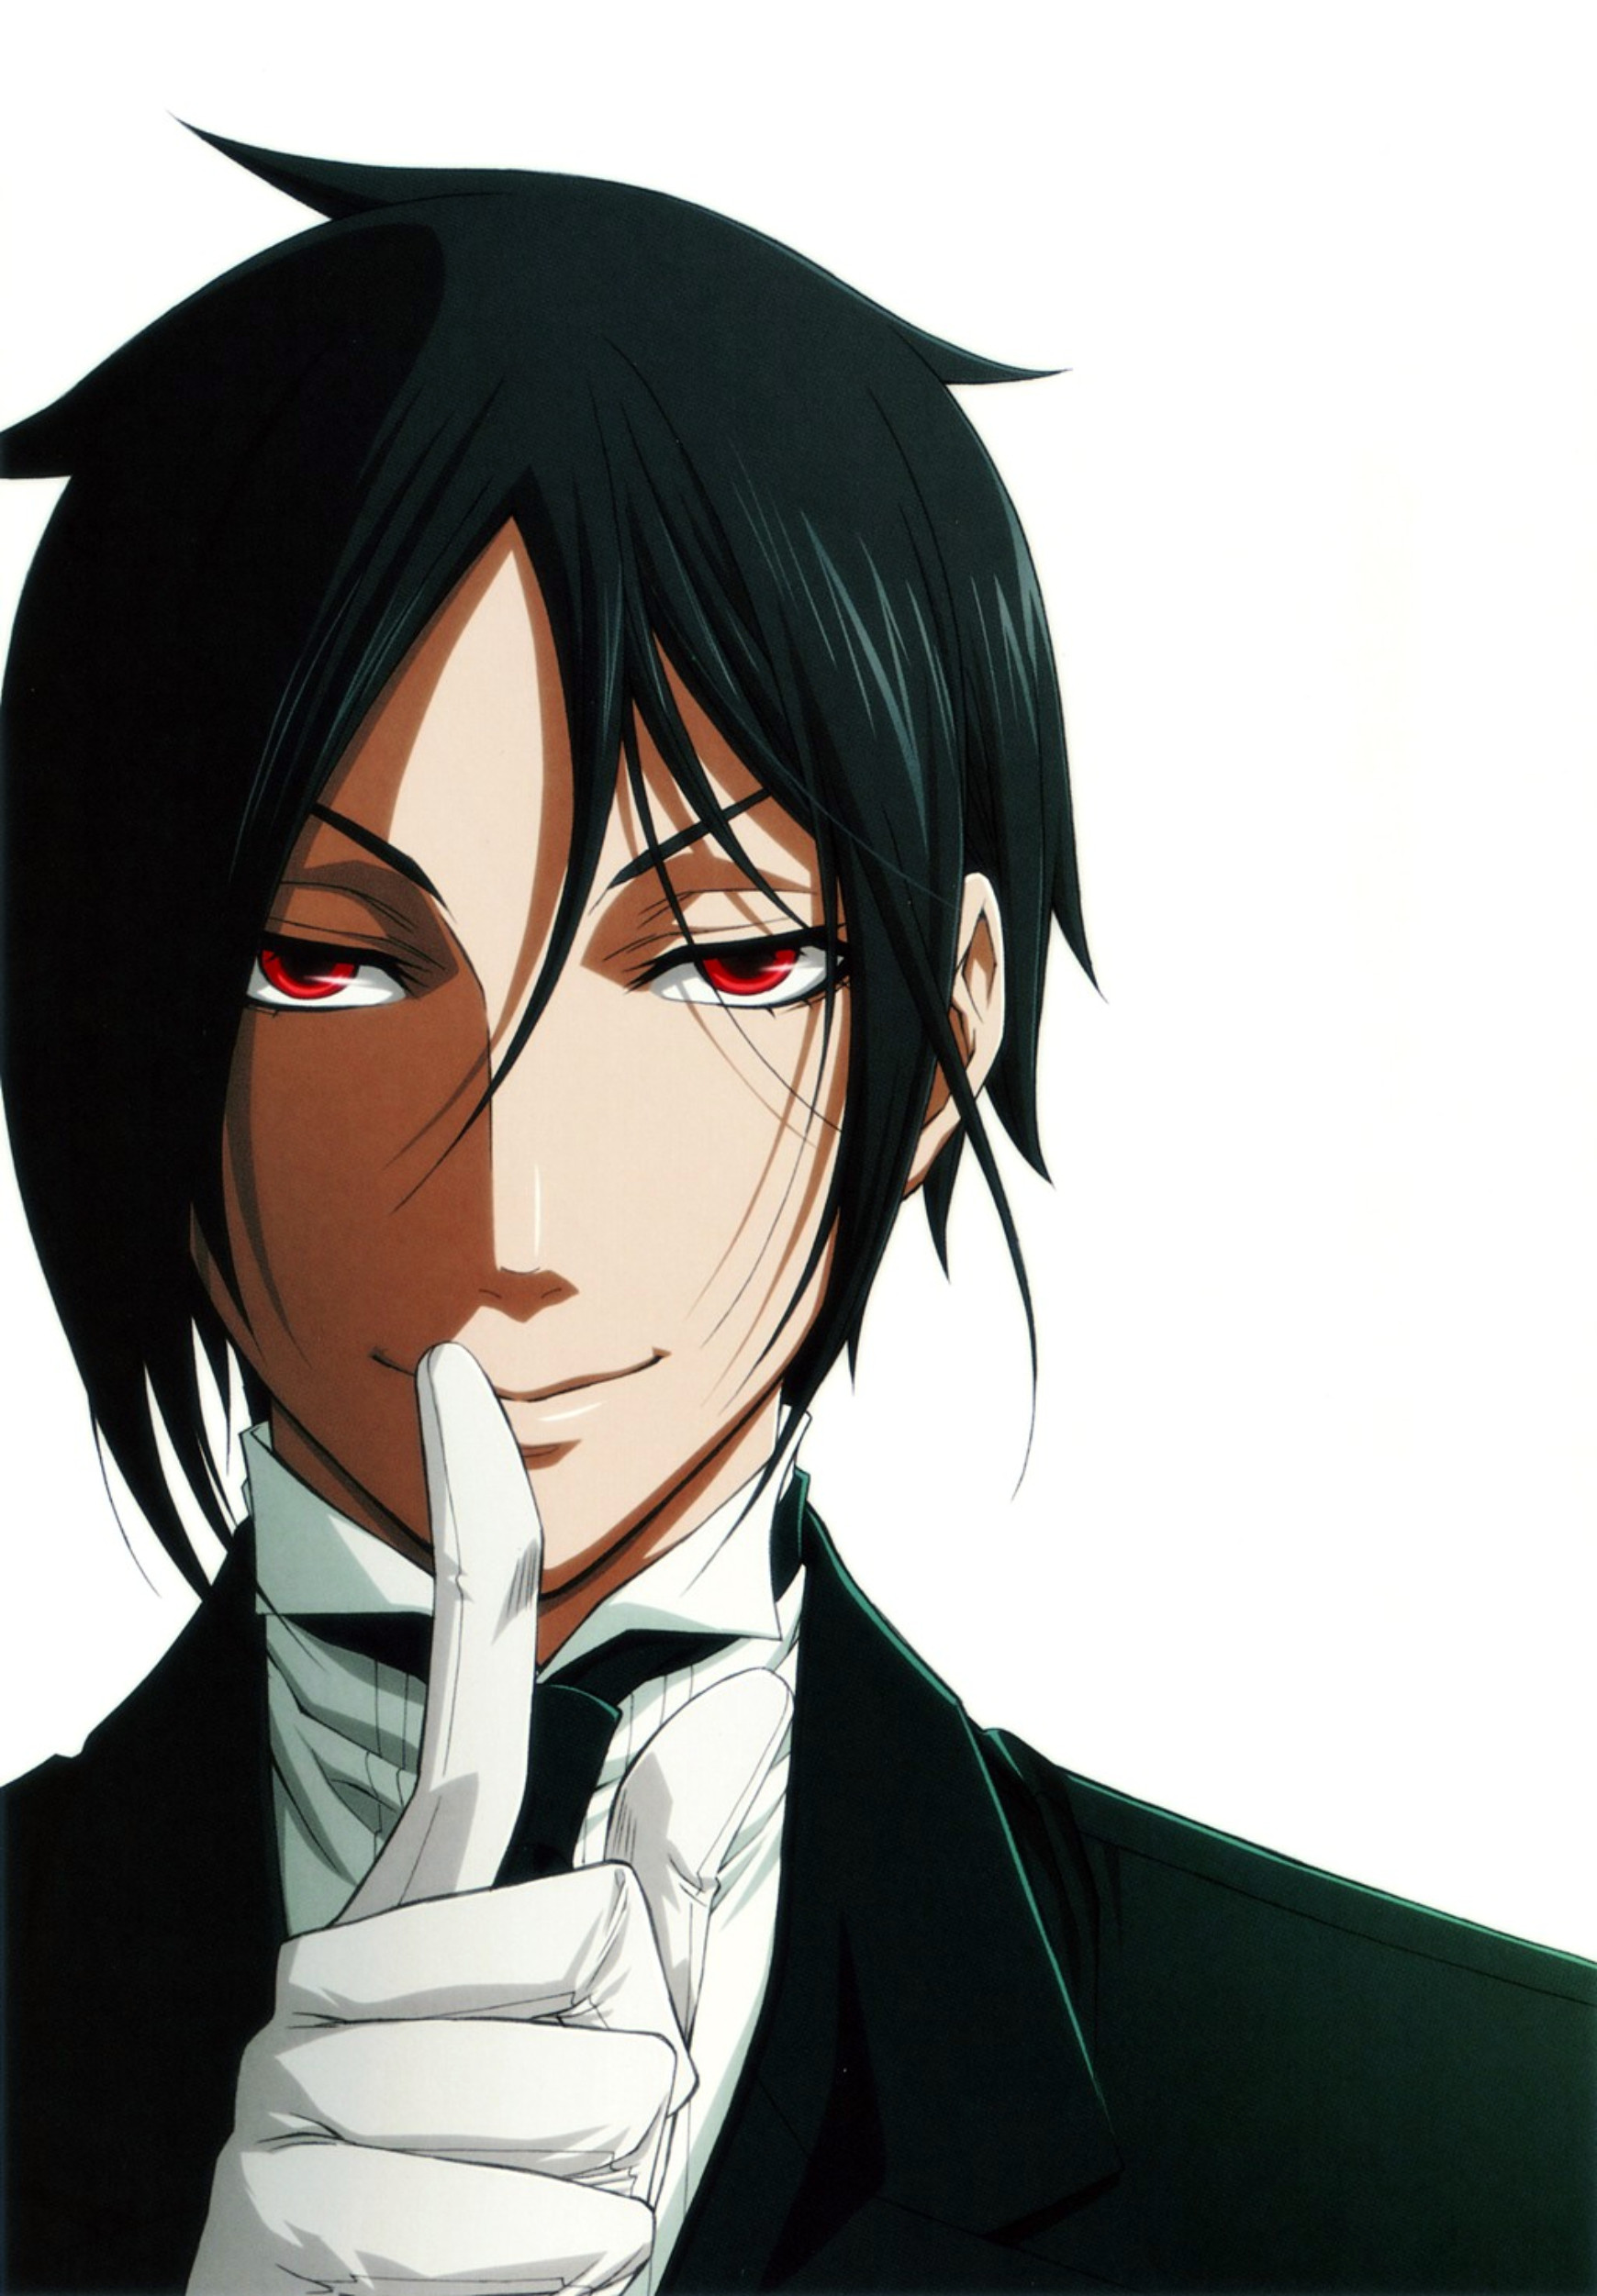 Res: 1740x2502, Bishonen images Sebastian Michaelis HD wallpaper and background photos